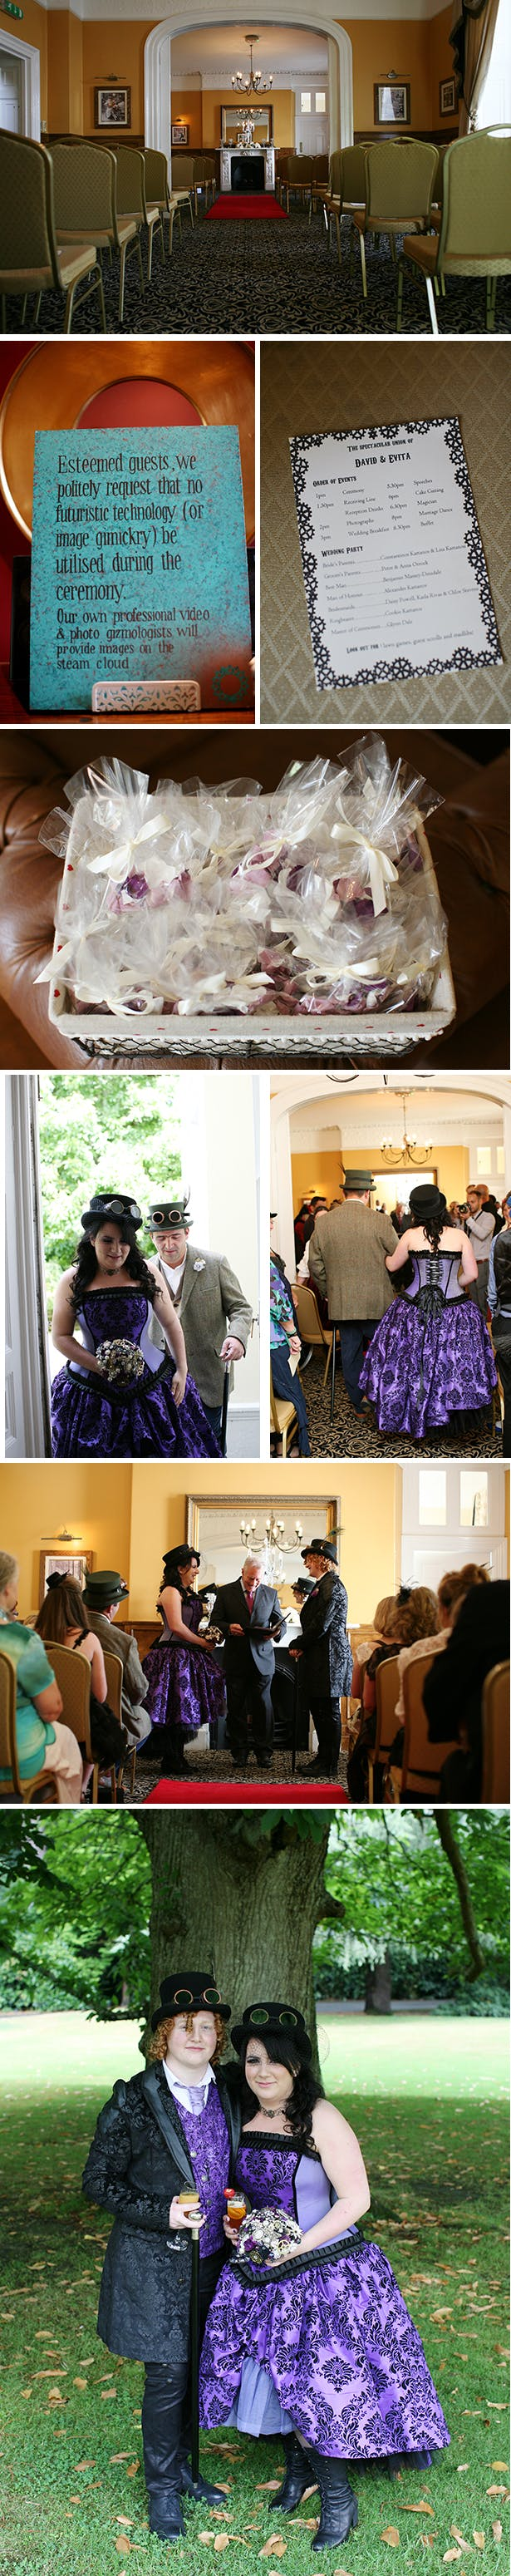 Steam punk themed wedding ceremony | Evita and David's steam punk wedding | Confetti.co.uk